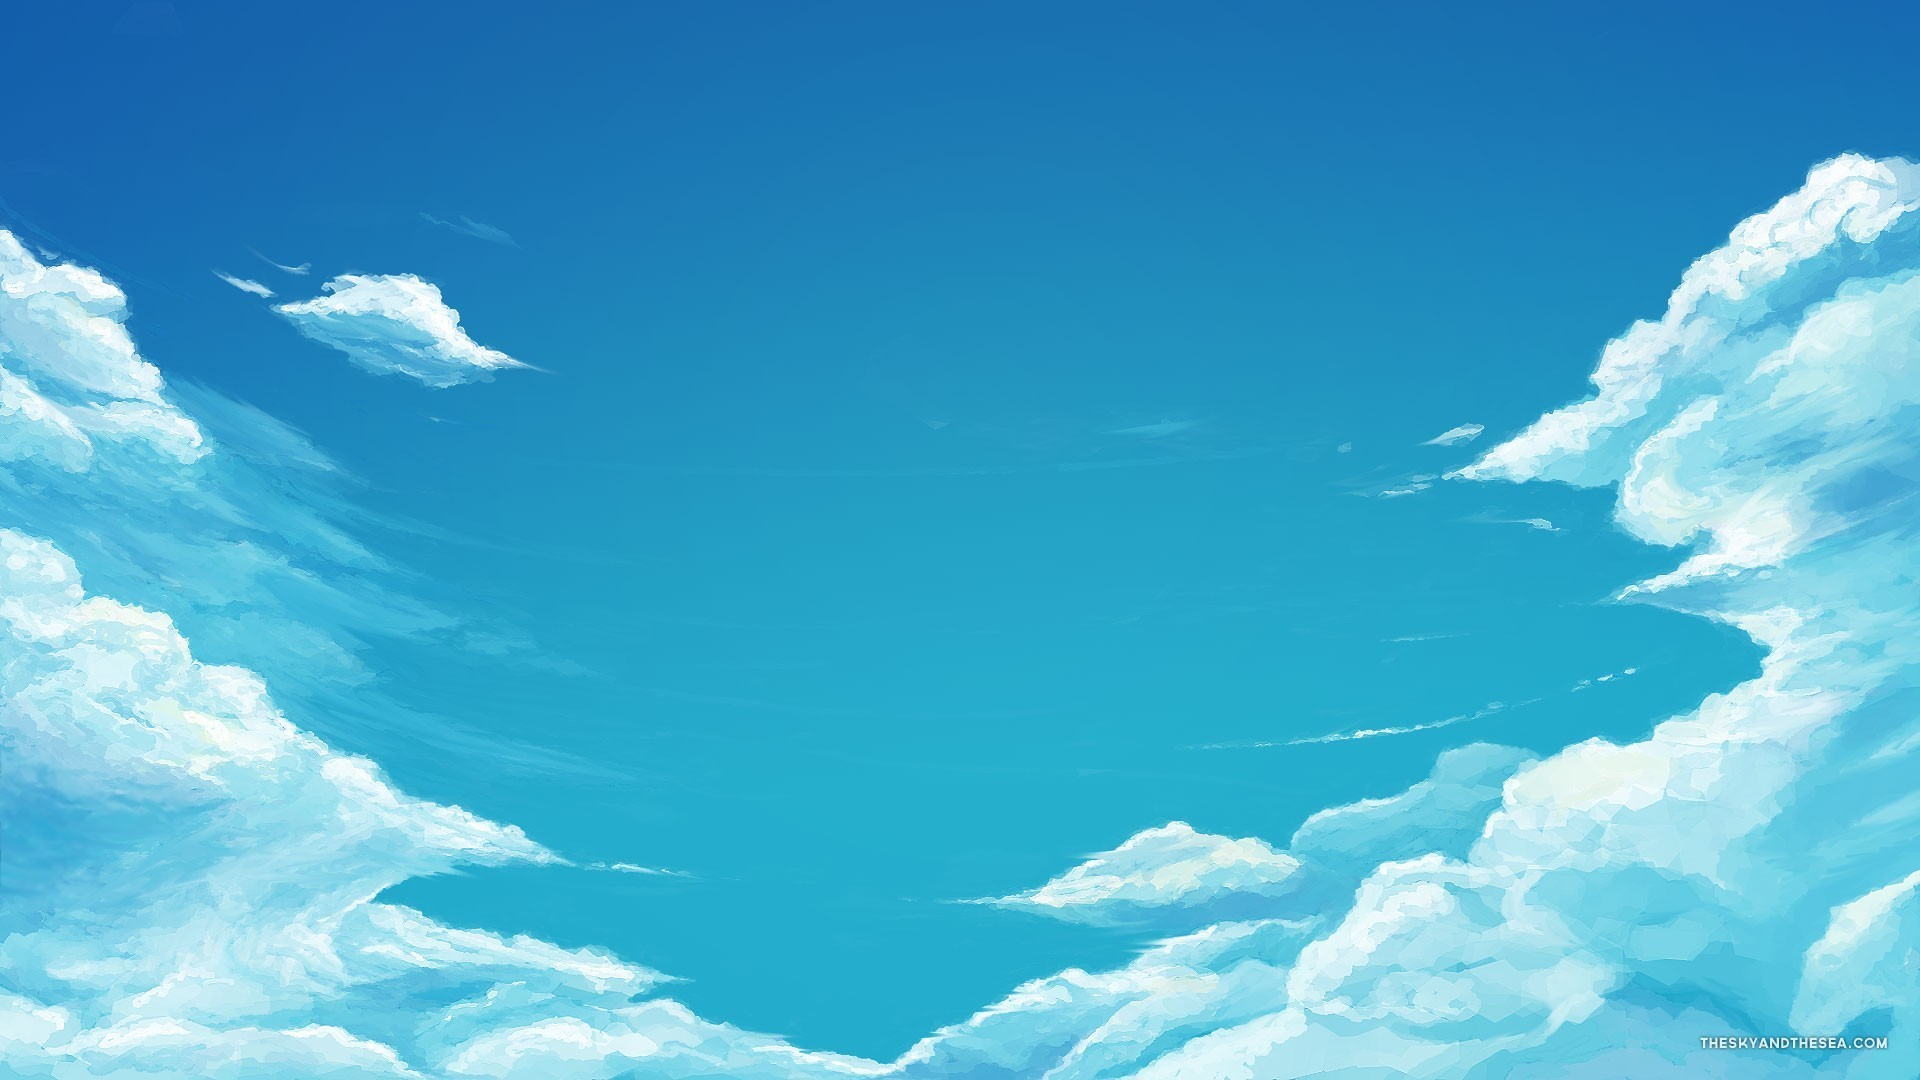 1920x1080 Very cool blue sky wallpaper